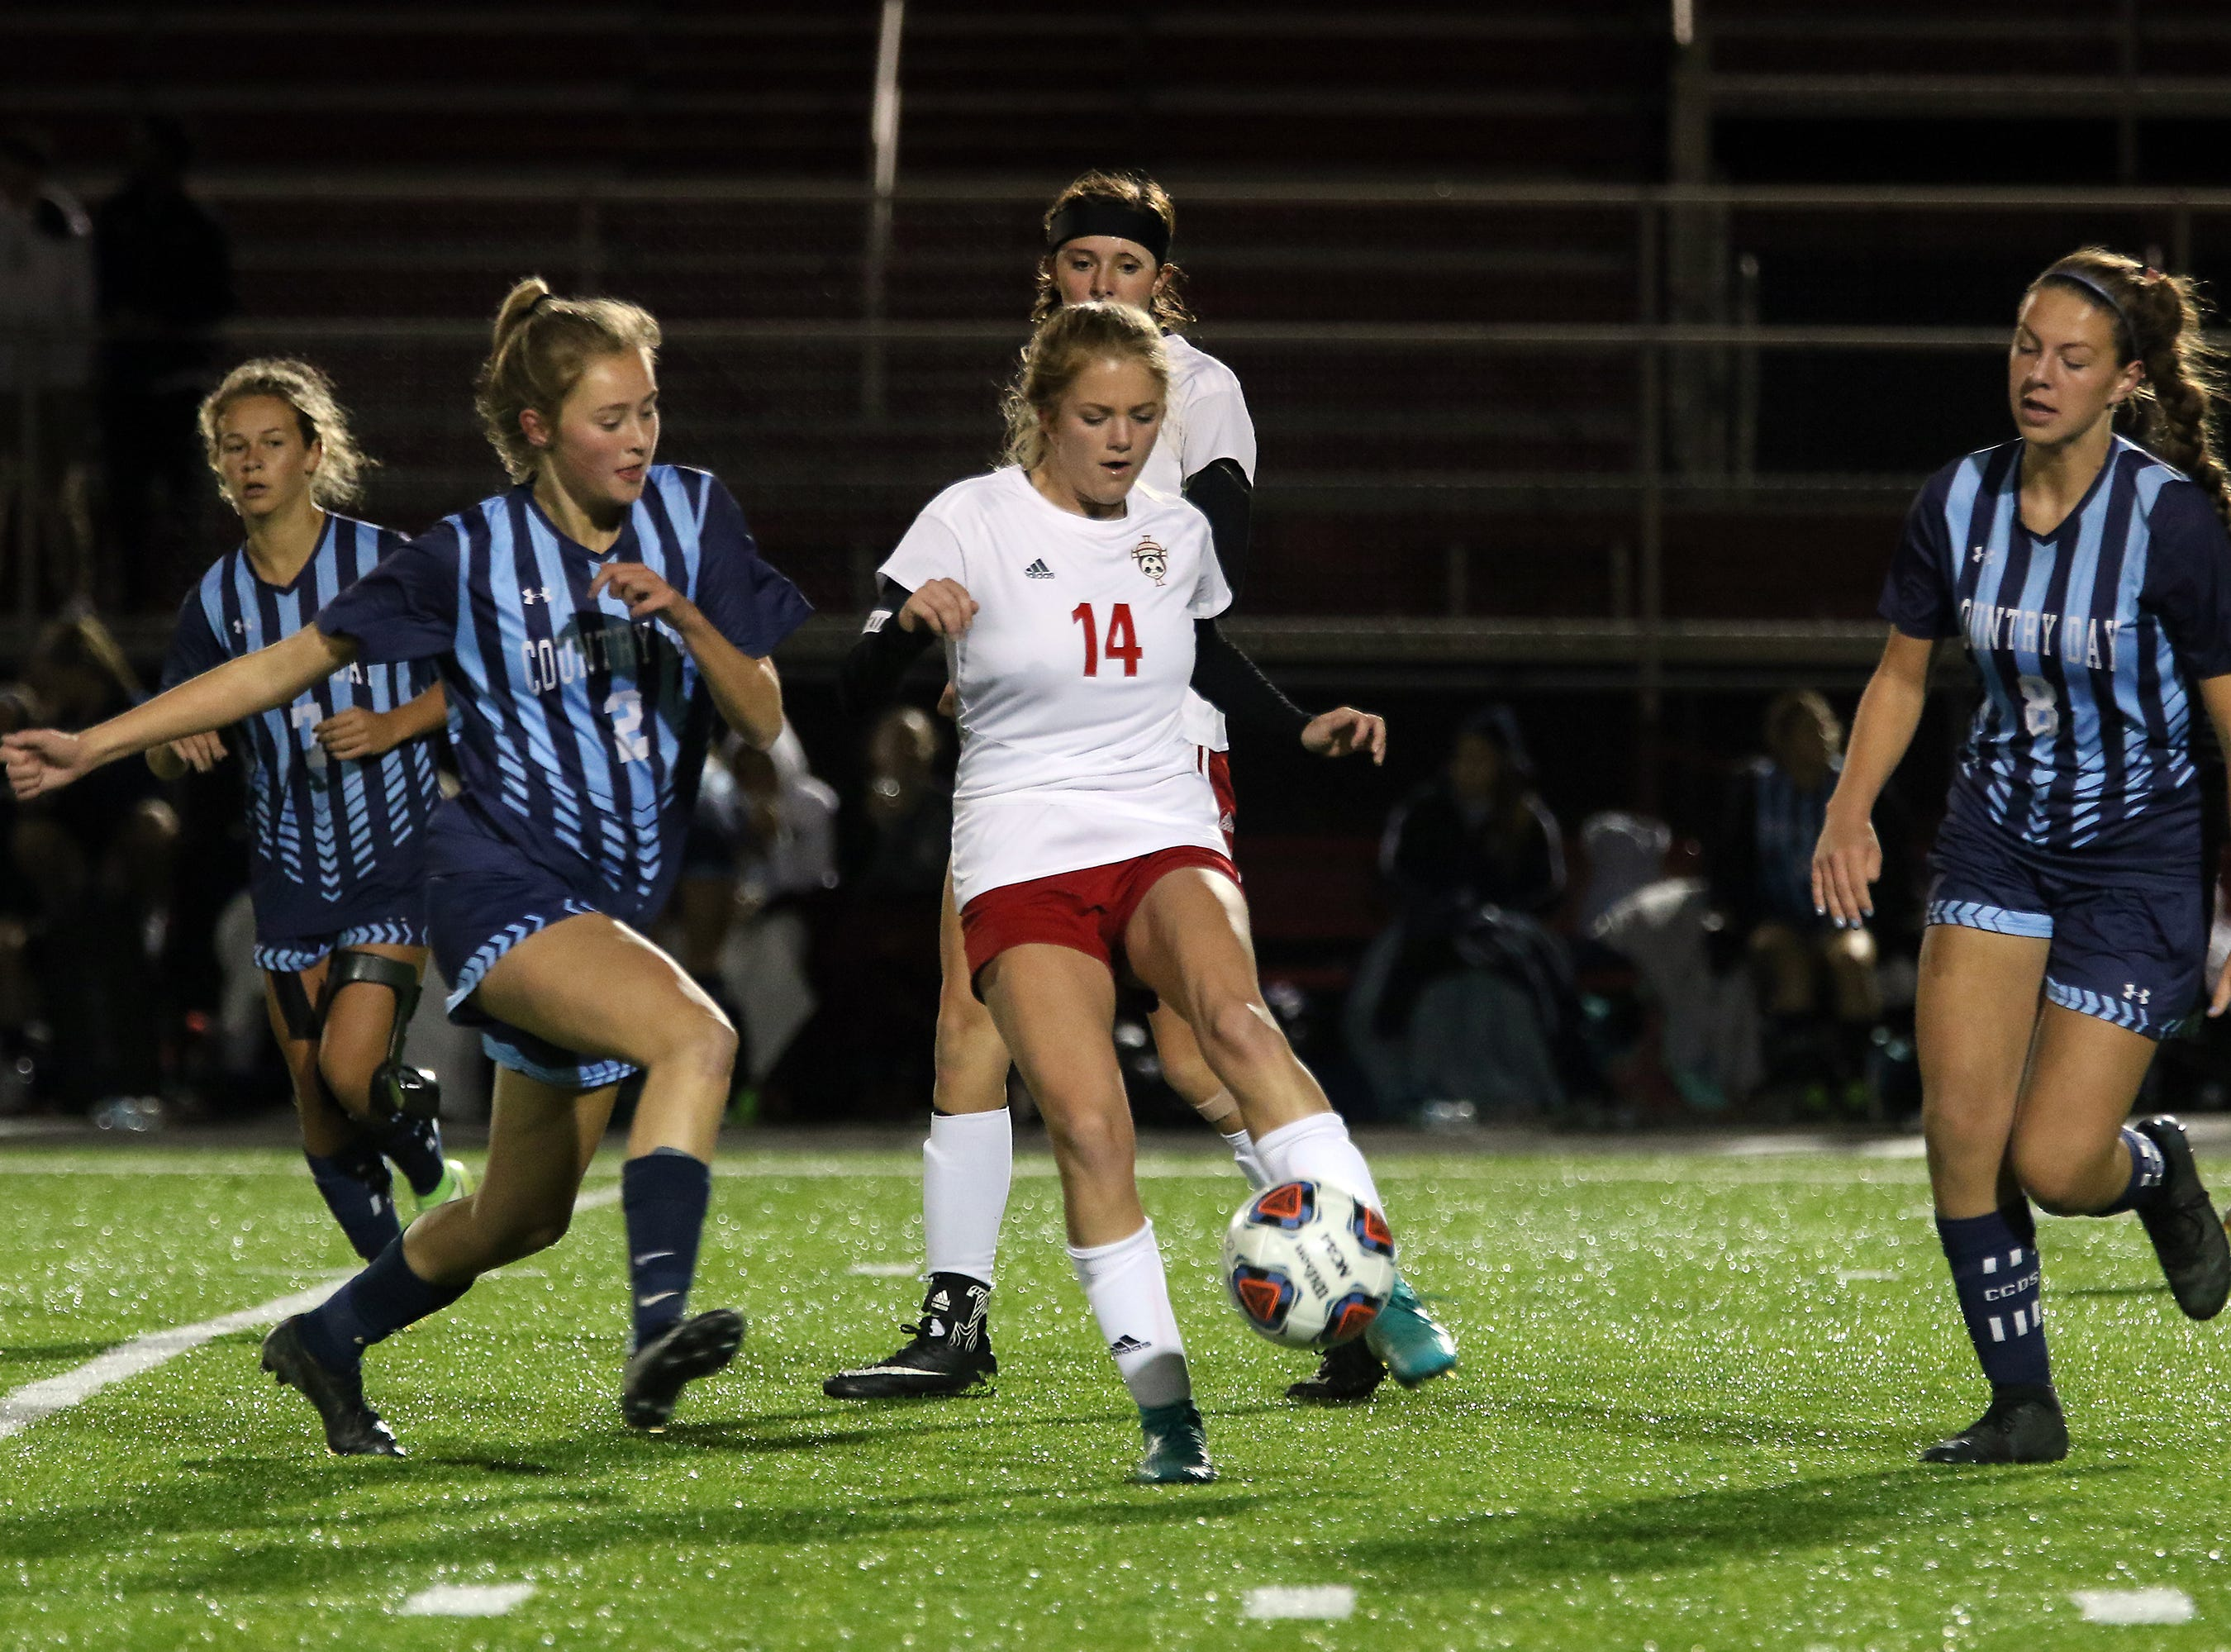 Rosecrans' Emma Zemba passes the ball against CCD in the Division III state semifinals at London High School on Tuesday.